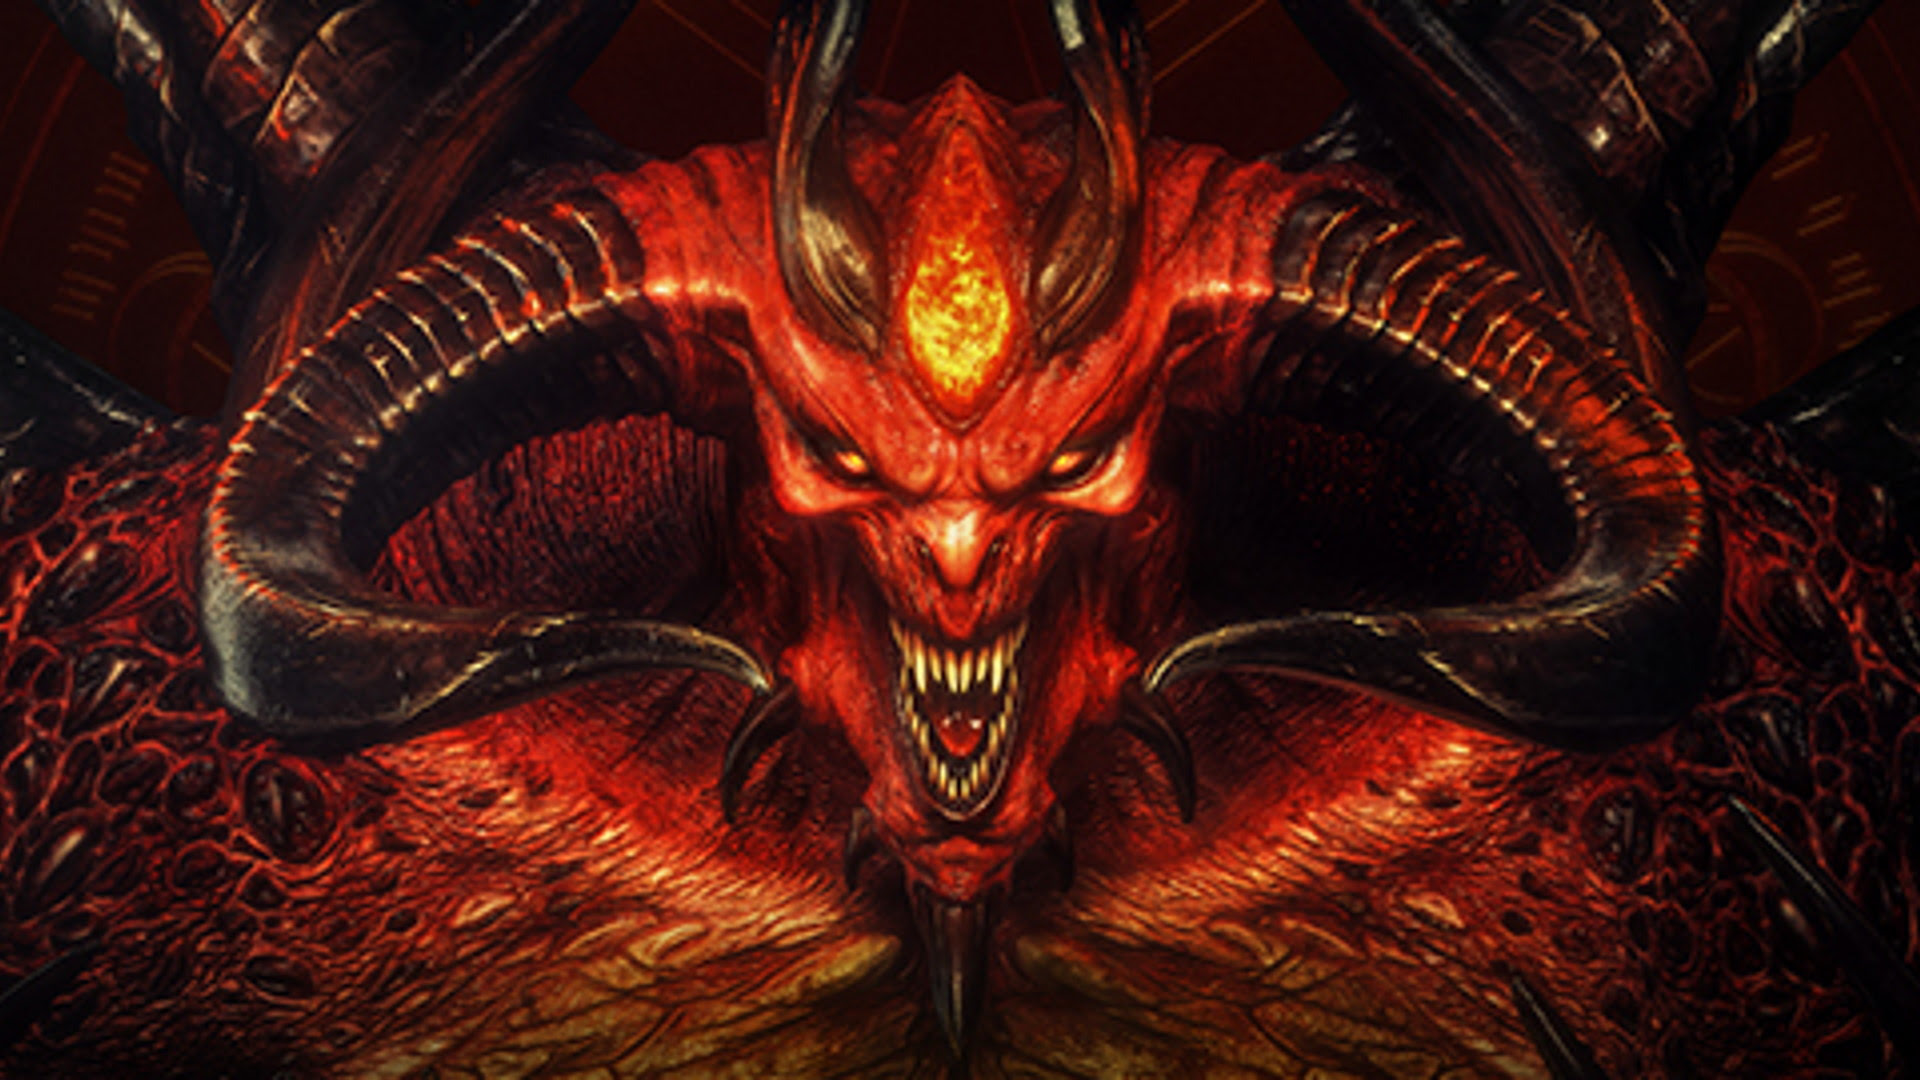 'Legacy code' in Diablo 2: Resurrected is causing widespread connection headaches